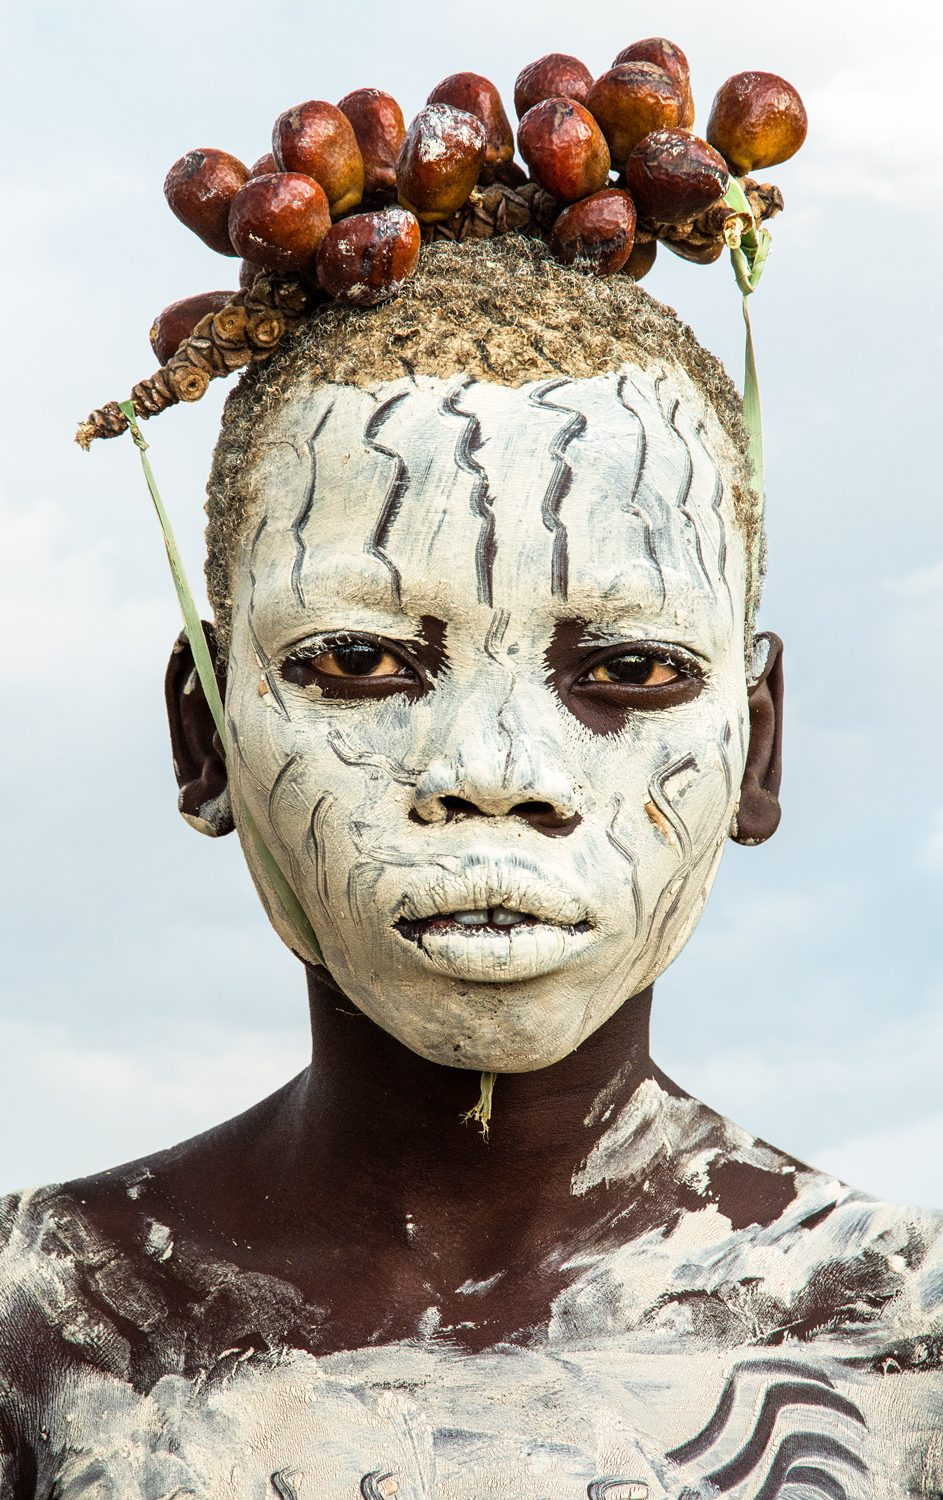 Kara Boy with Chalk Make up and Berry Adornment, Omo River, Ethiopia